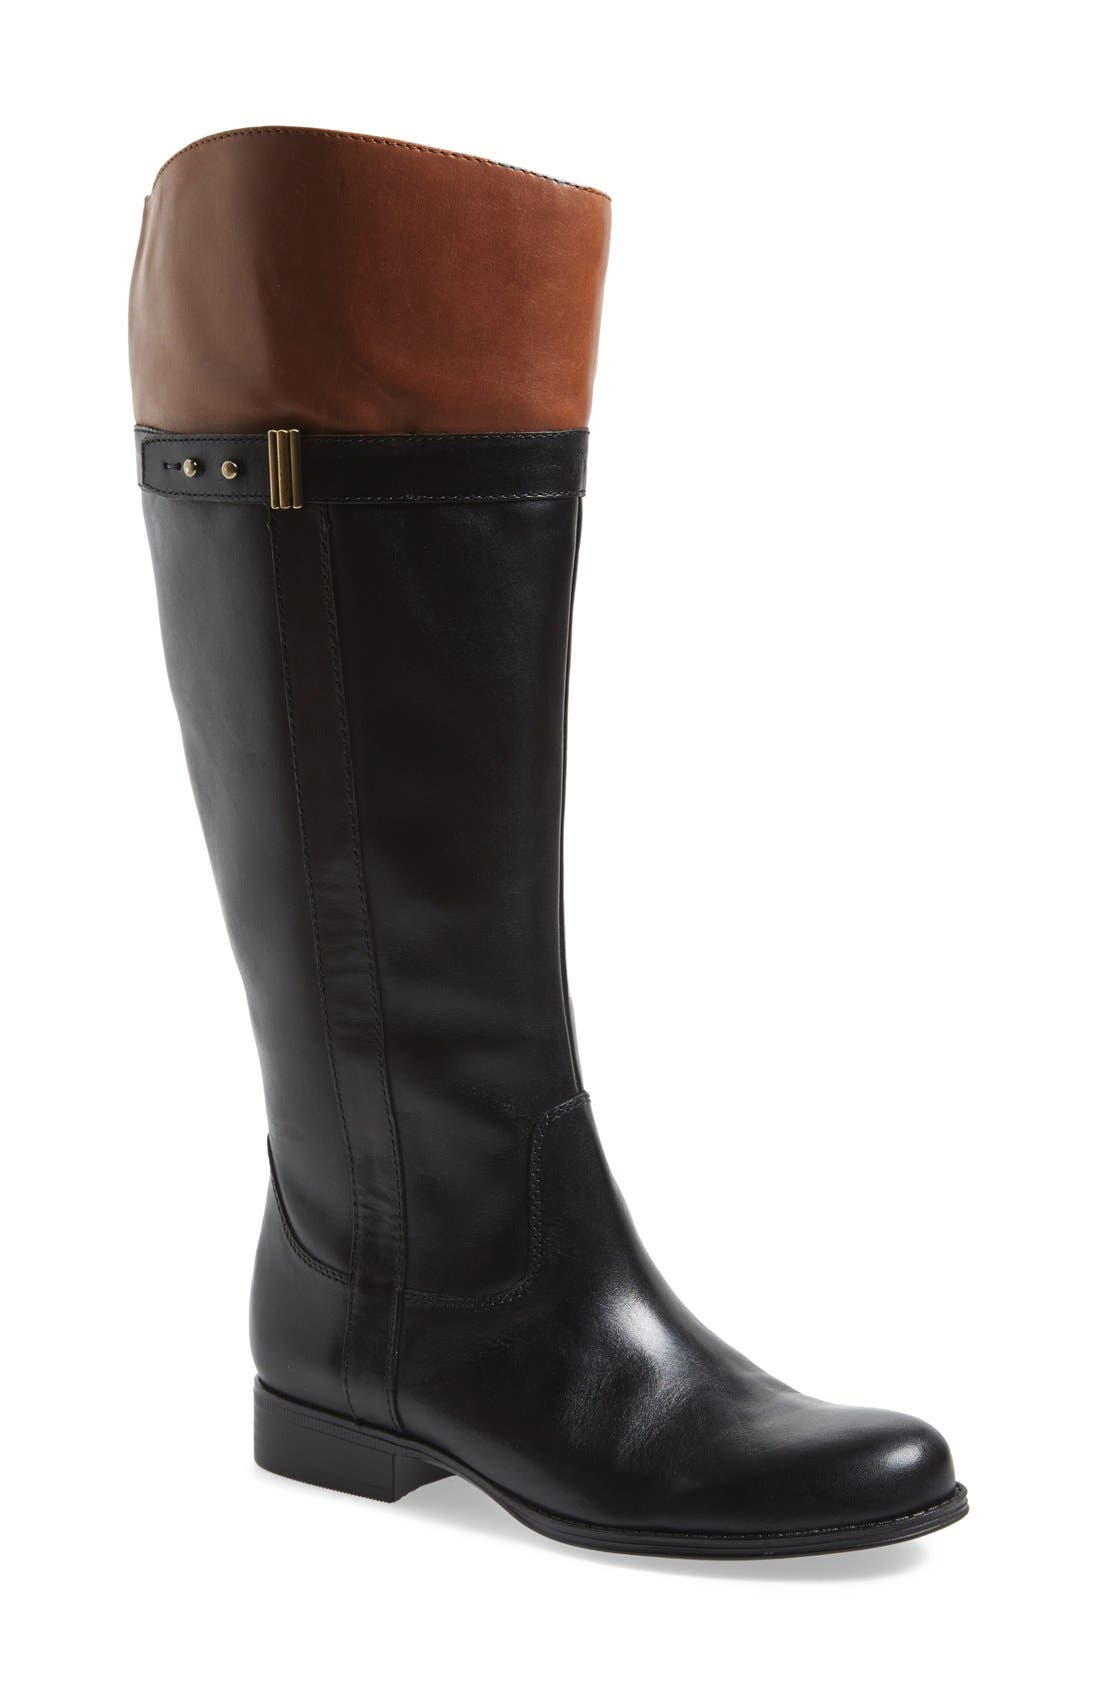 Main Image - Naturalizer 'Josette' Knee High Boot (Wide Calf) (Women)